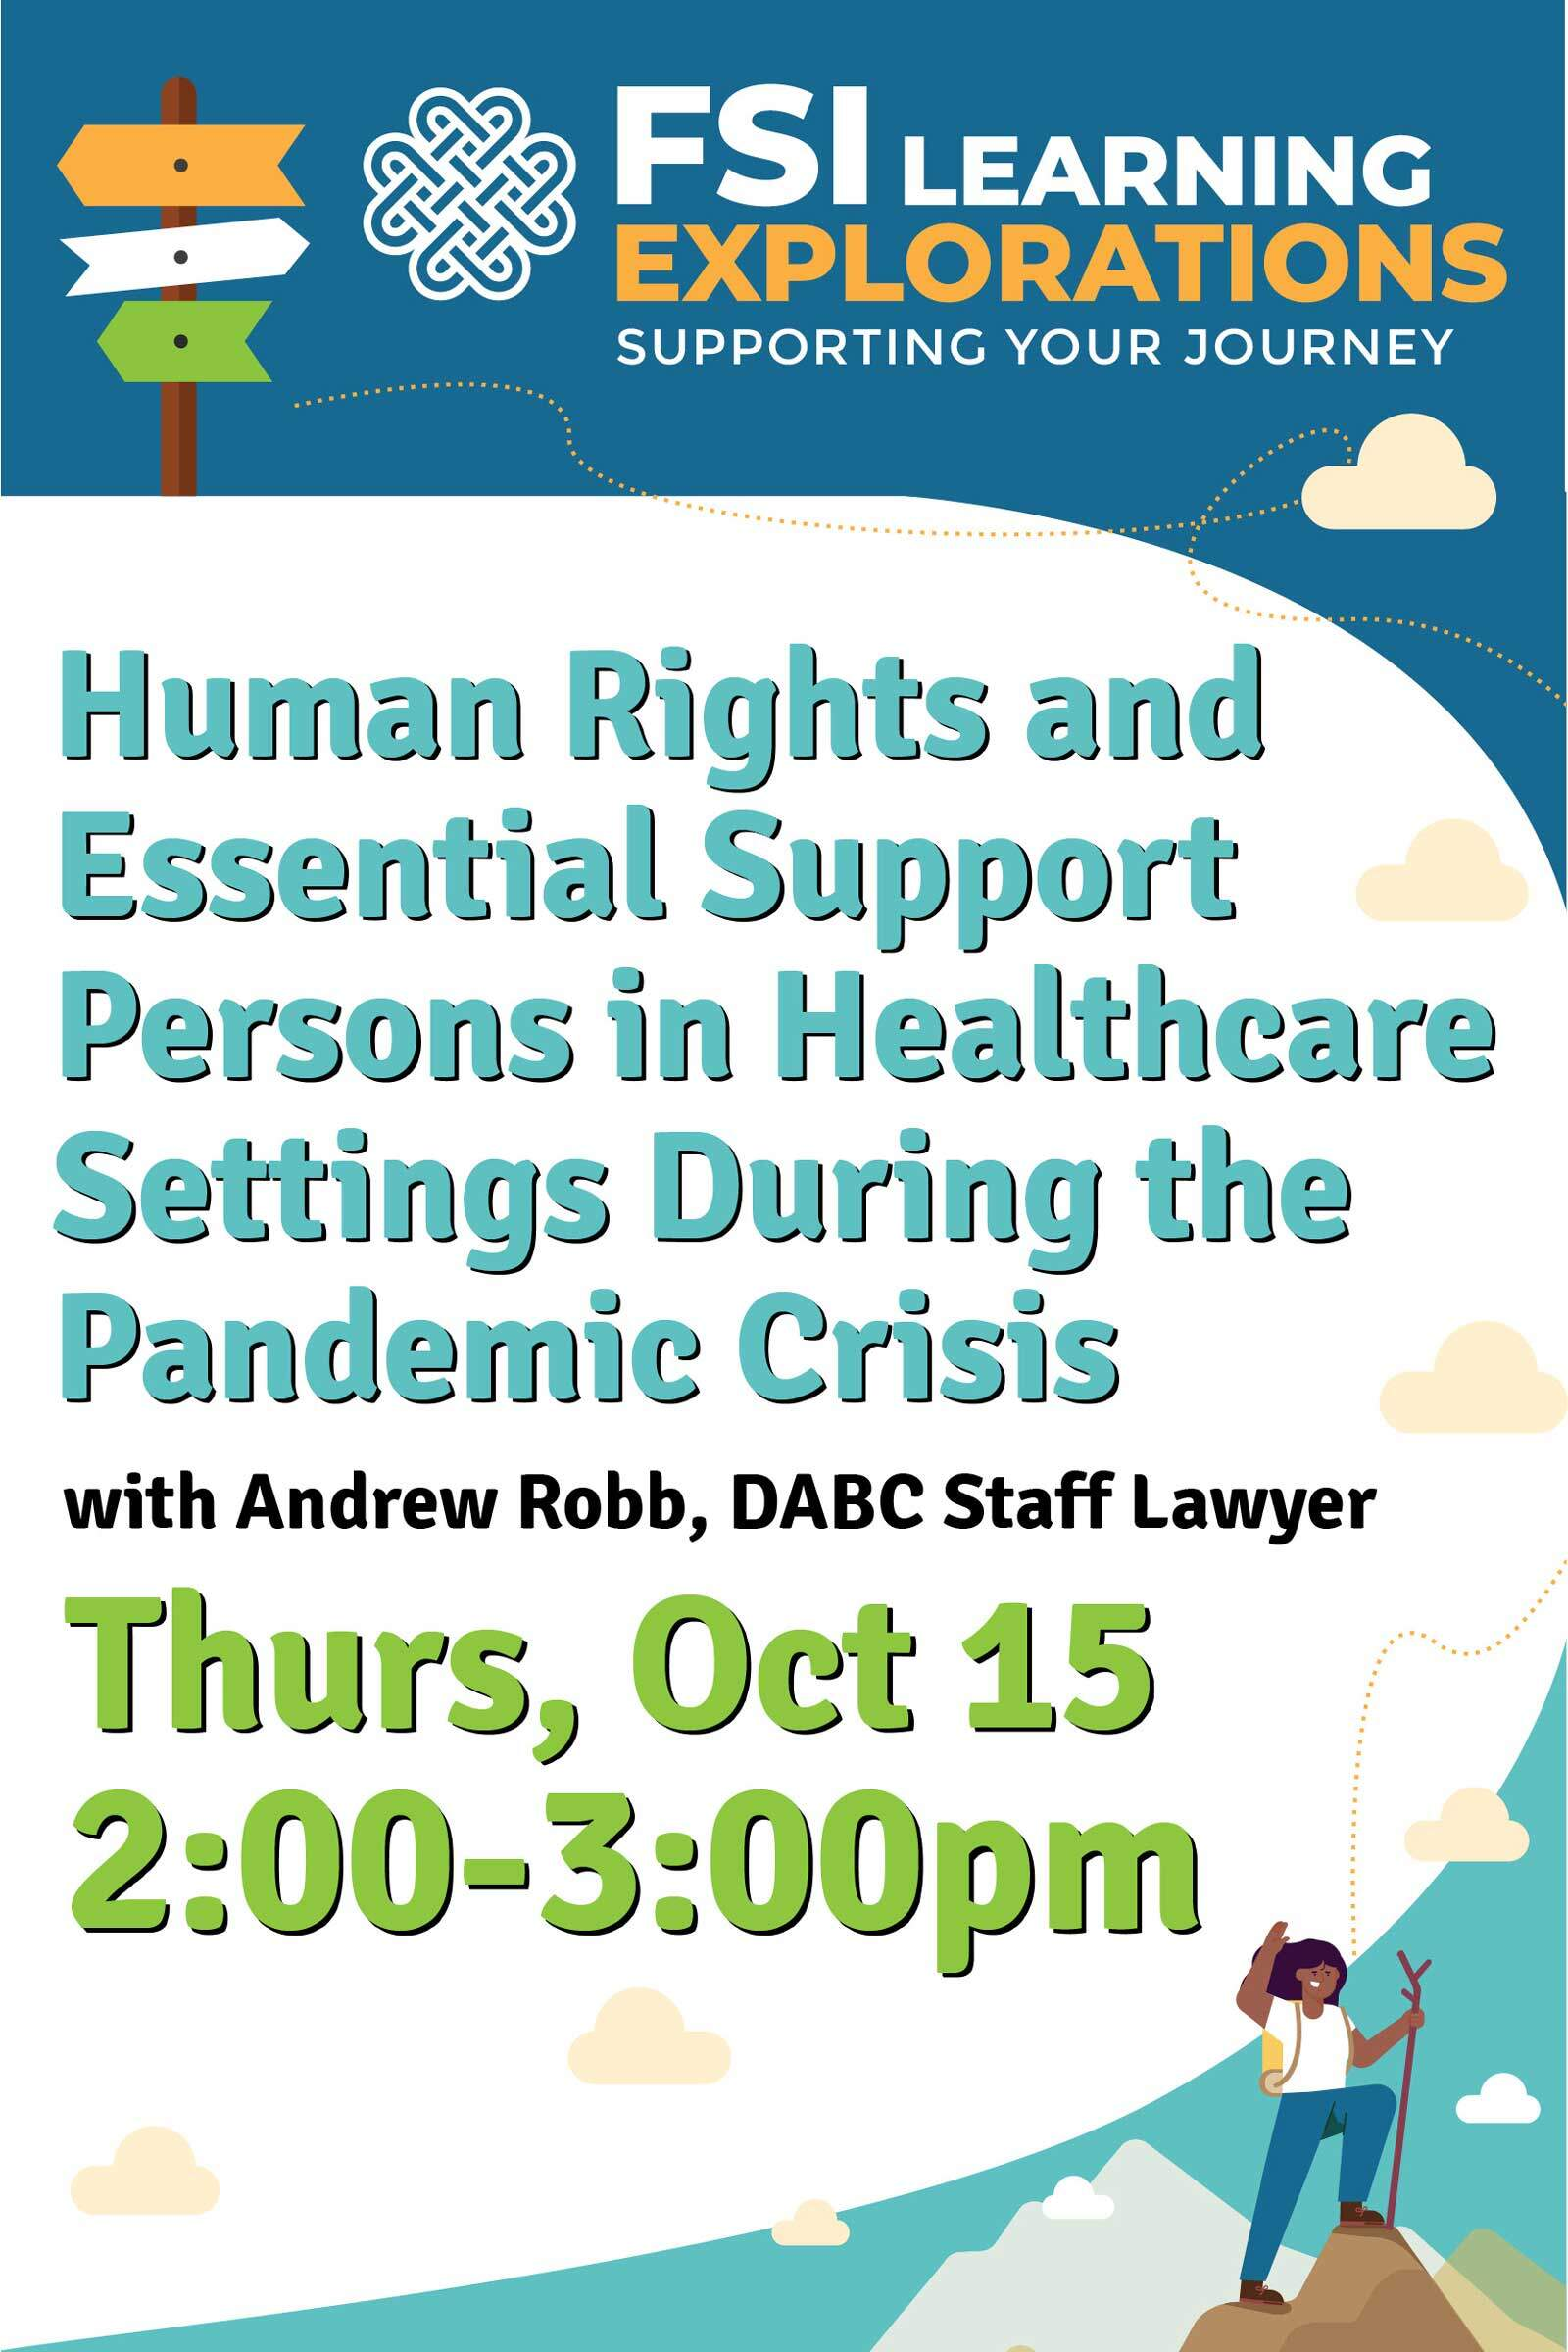 FSI Learning Explorations - Human Rights and Essential Support Persons in Healthcare Settings During the Pandemic Crisis